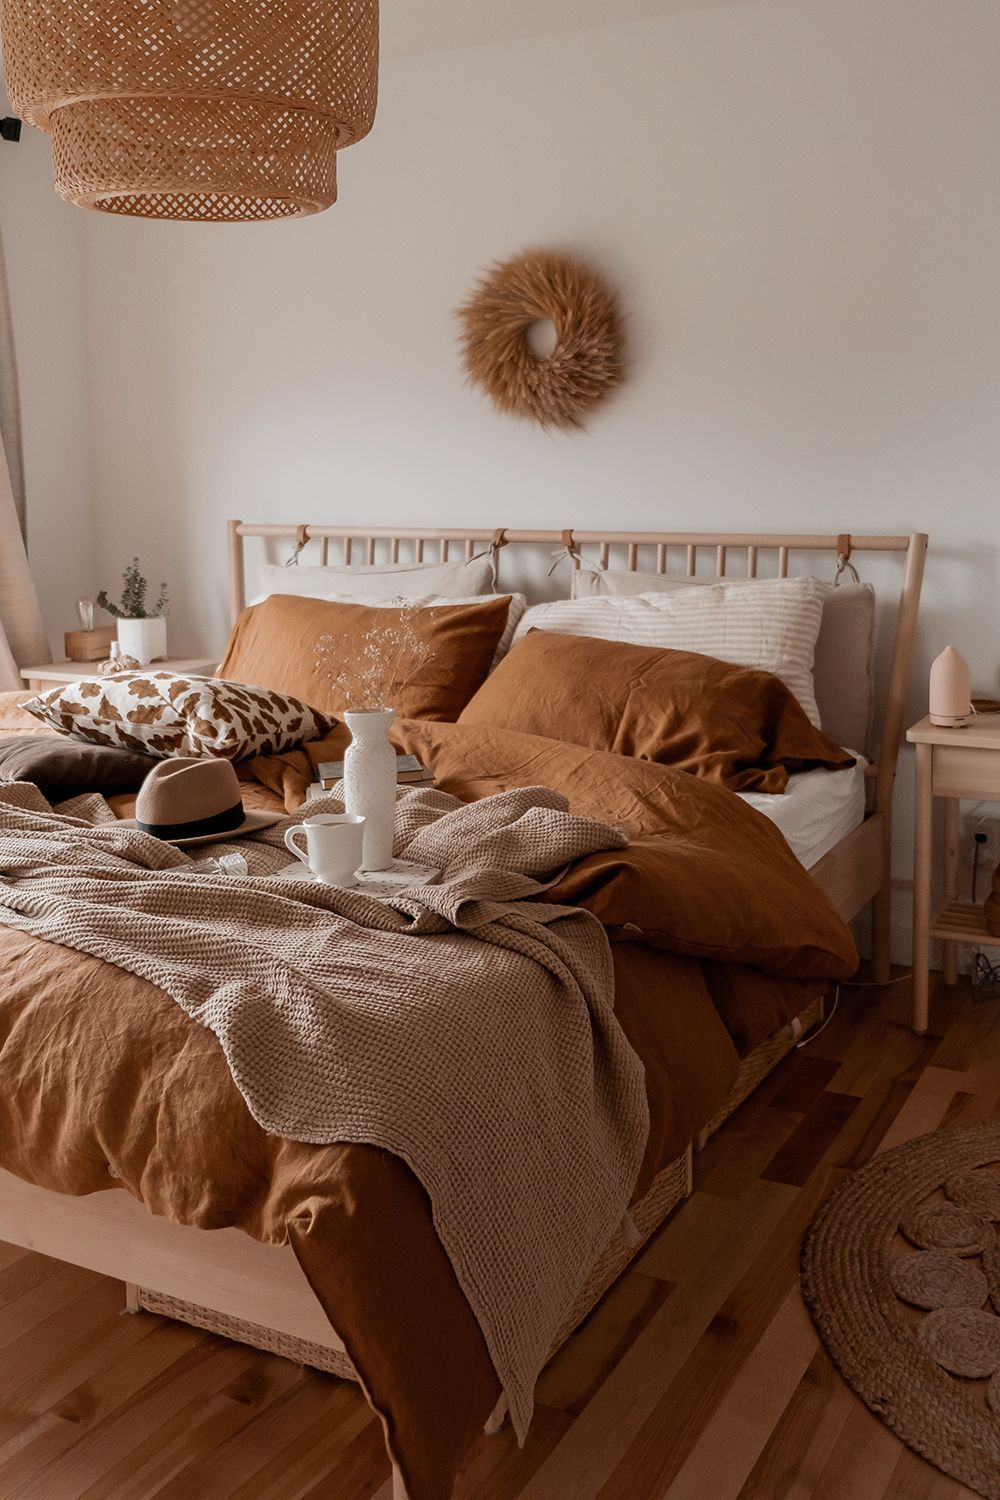 Create a bedroom that screams Autumn with linen bedding in